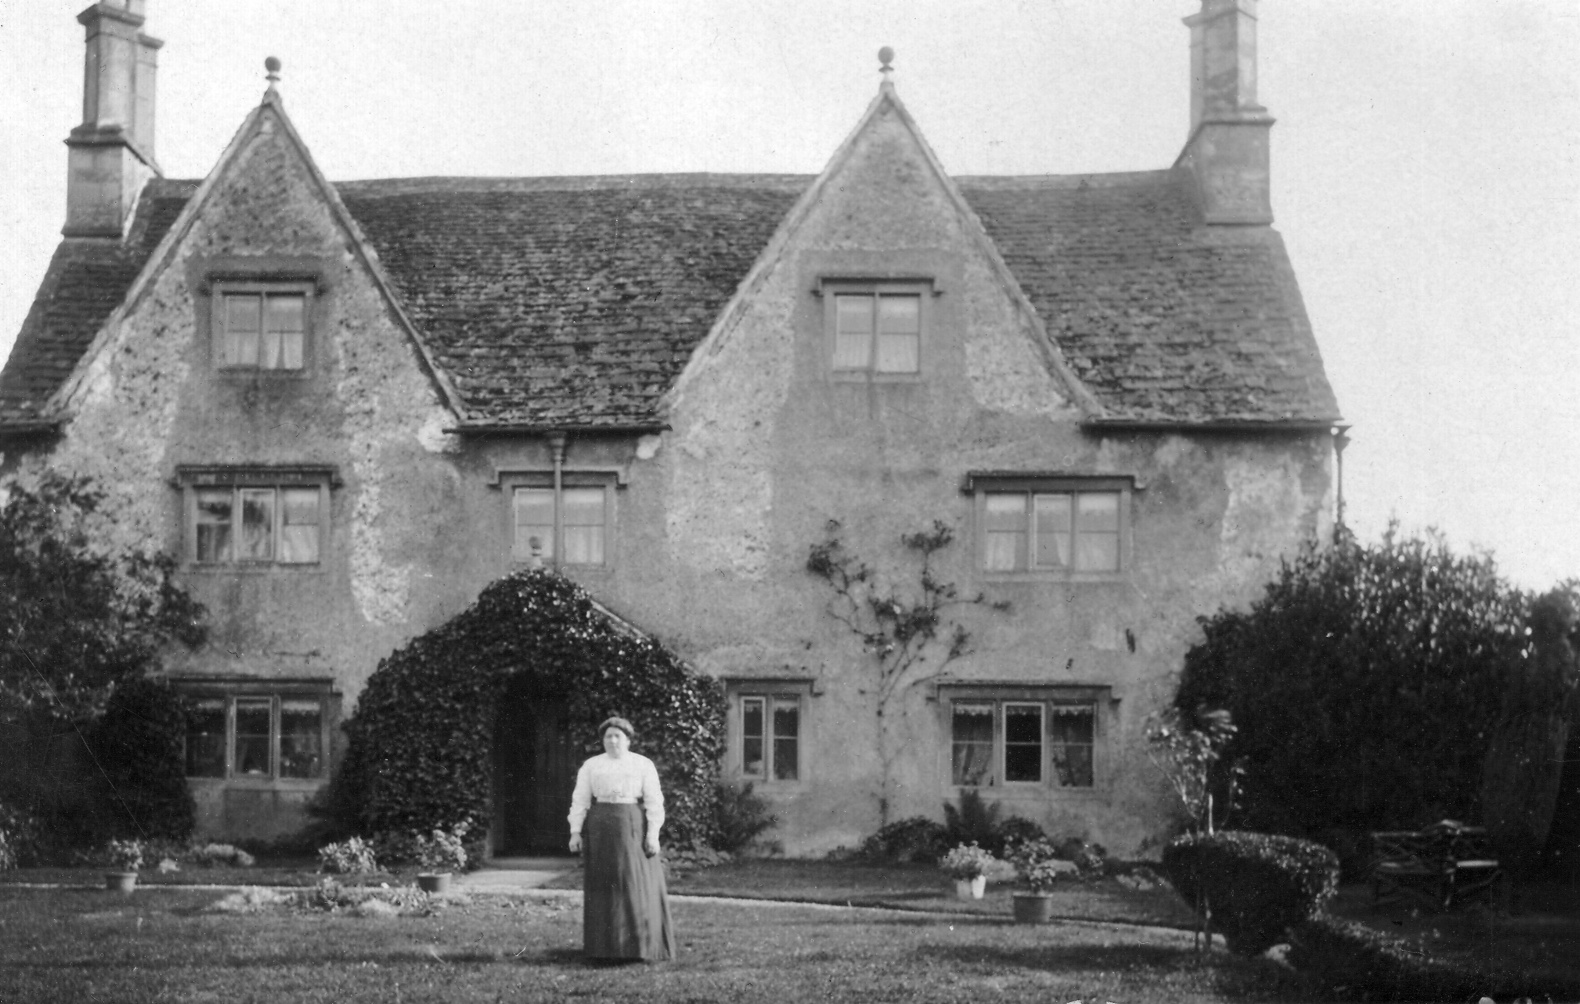 Mays Farm - over a hundred years ago